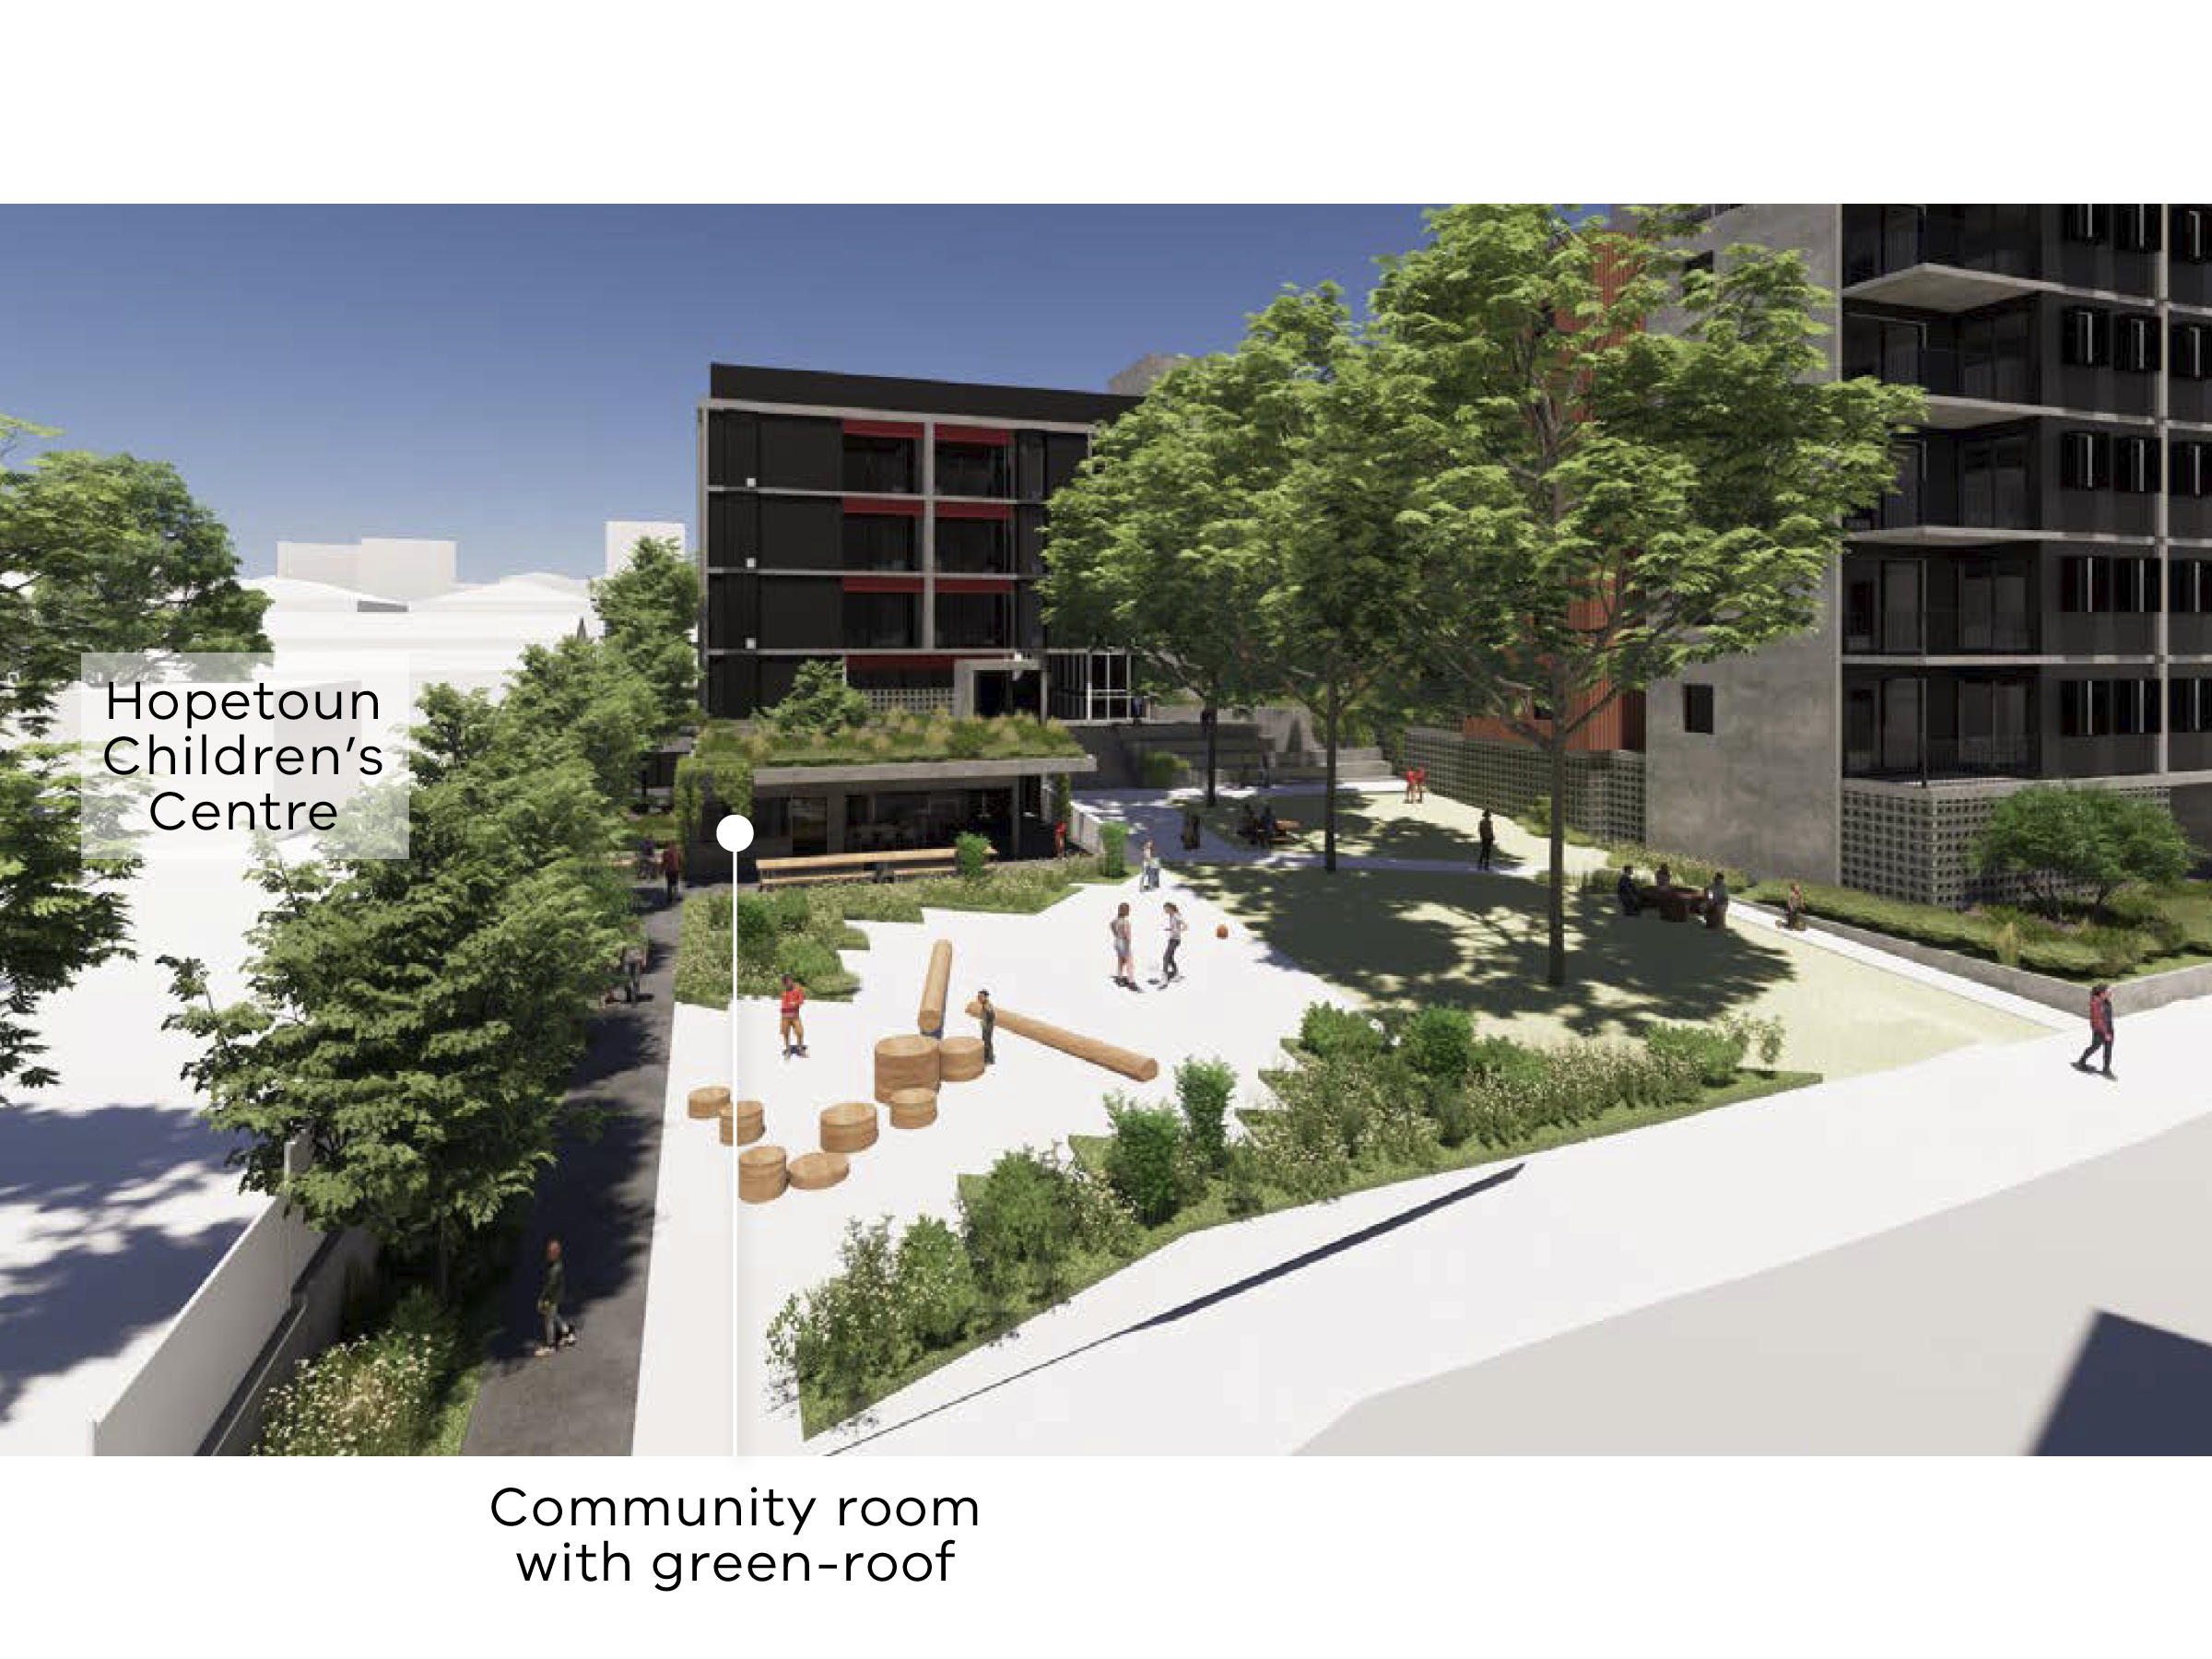 Artist impression of the new development showing the children's garden and the location of Hopetoun Children's Centre and the community room with a green roof